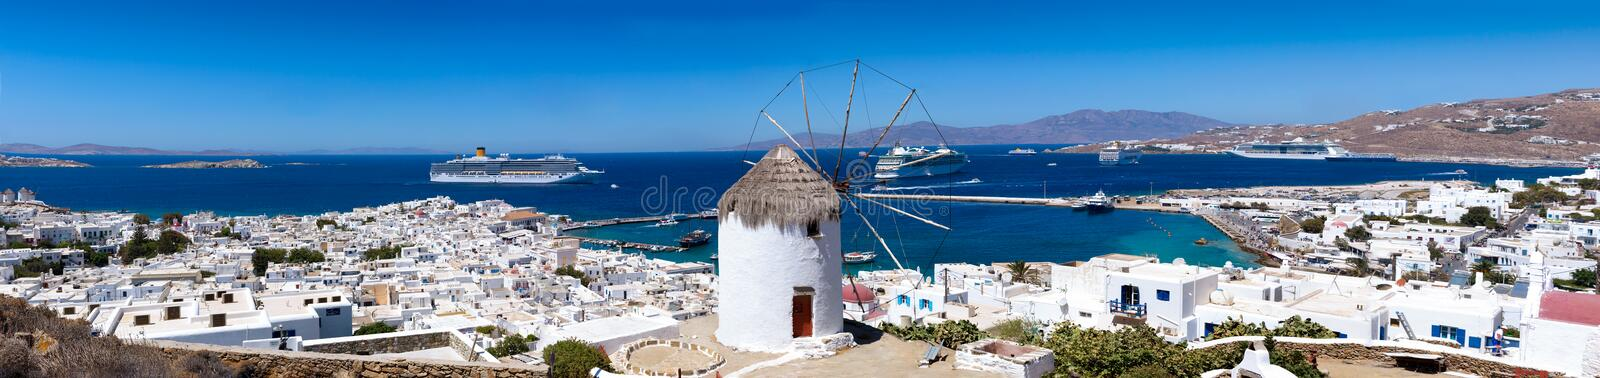 Panoramic view over Mykonos town, Greece royalty free stock image